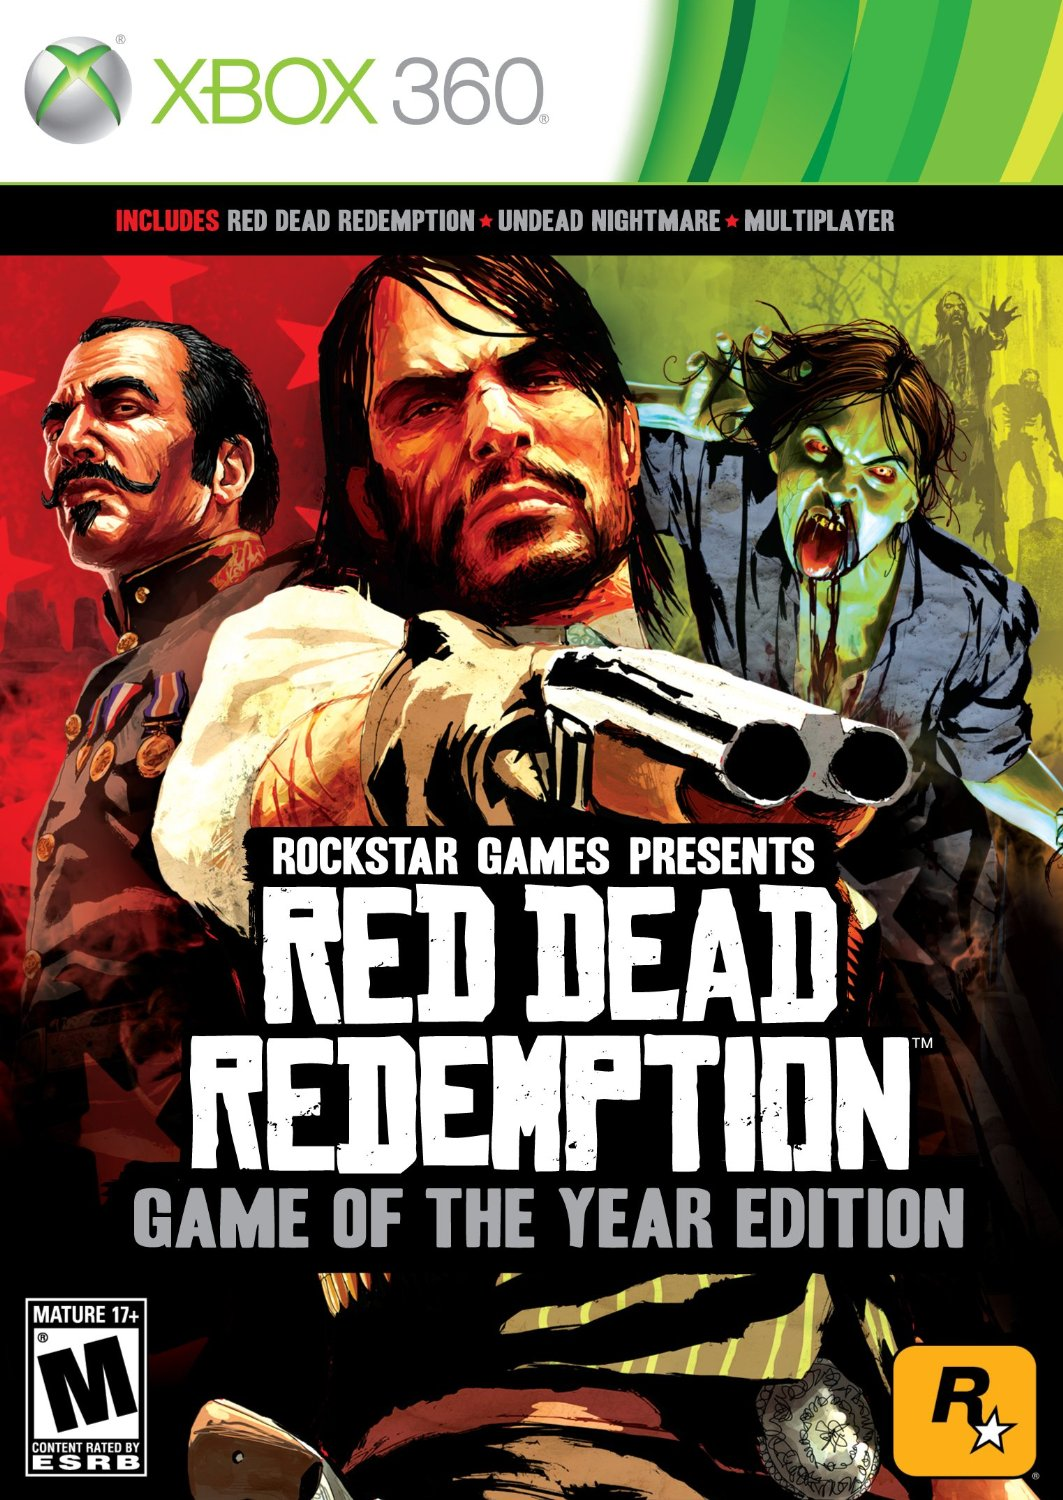 Red Dead Redemption: Game of the Year Edition (2 Disc)